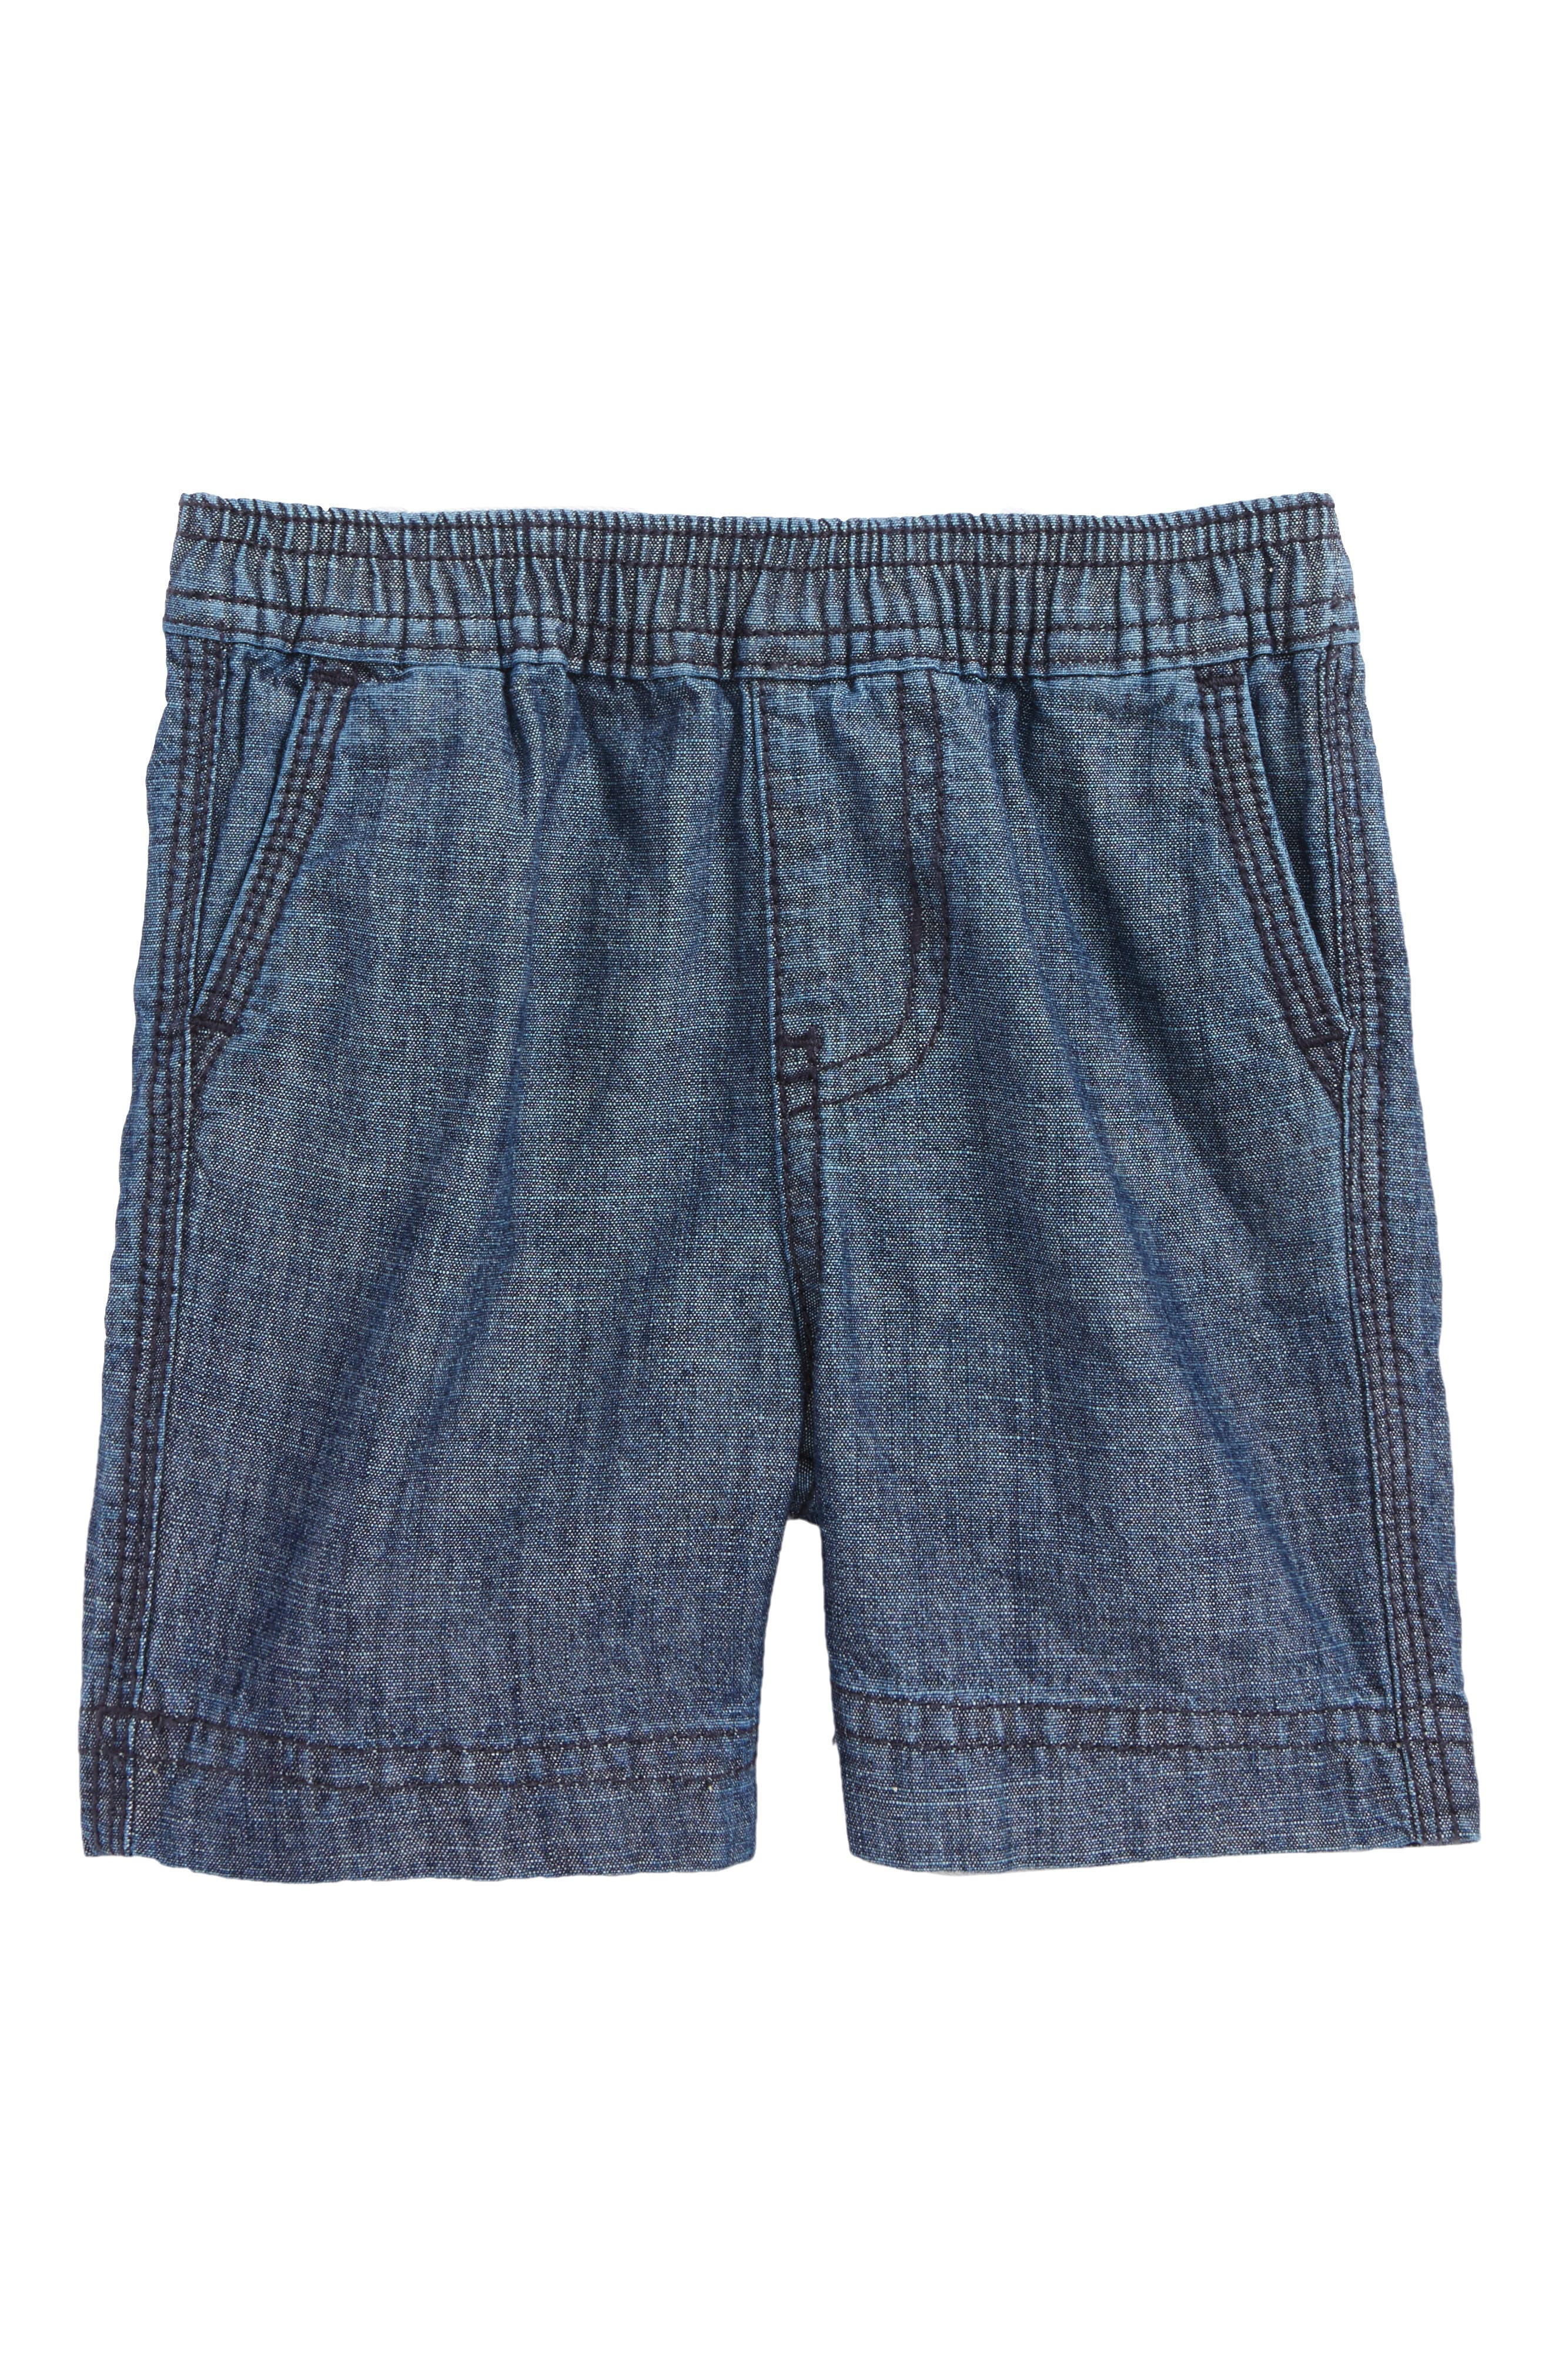 Easy Does It Chambray Shorts,                         Main,                         color, Blue Chambray